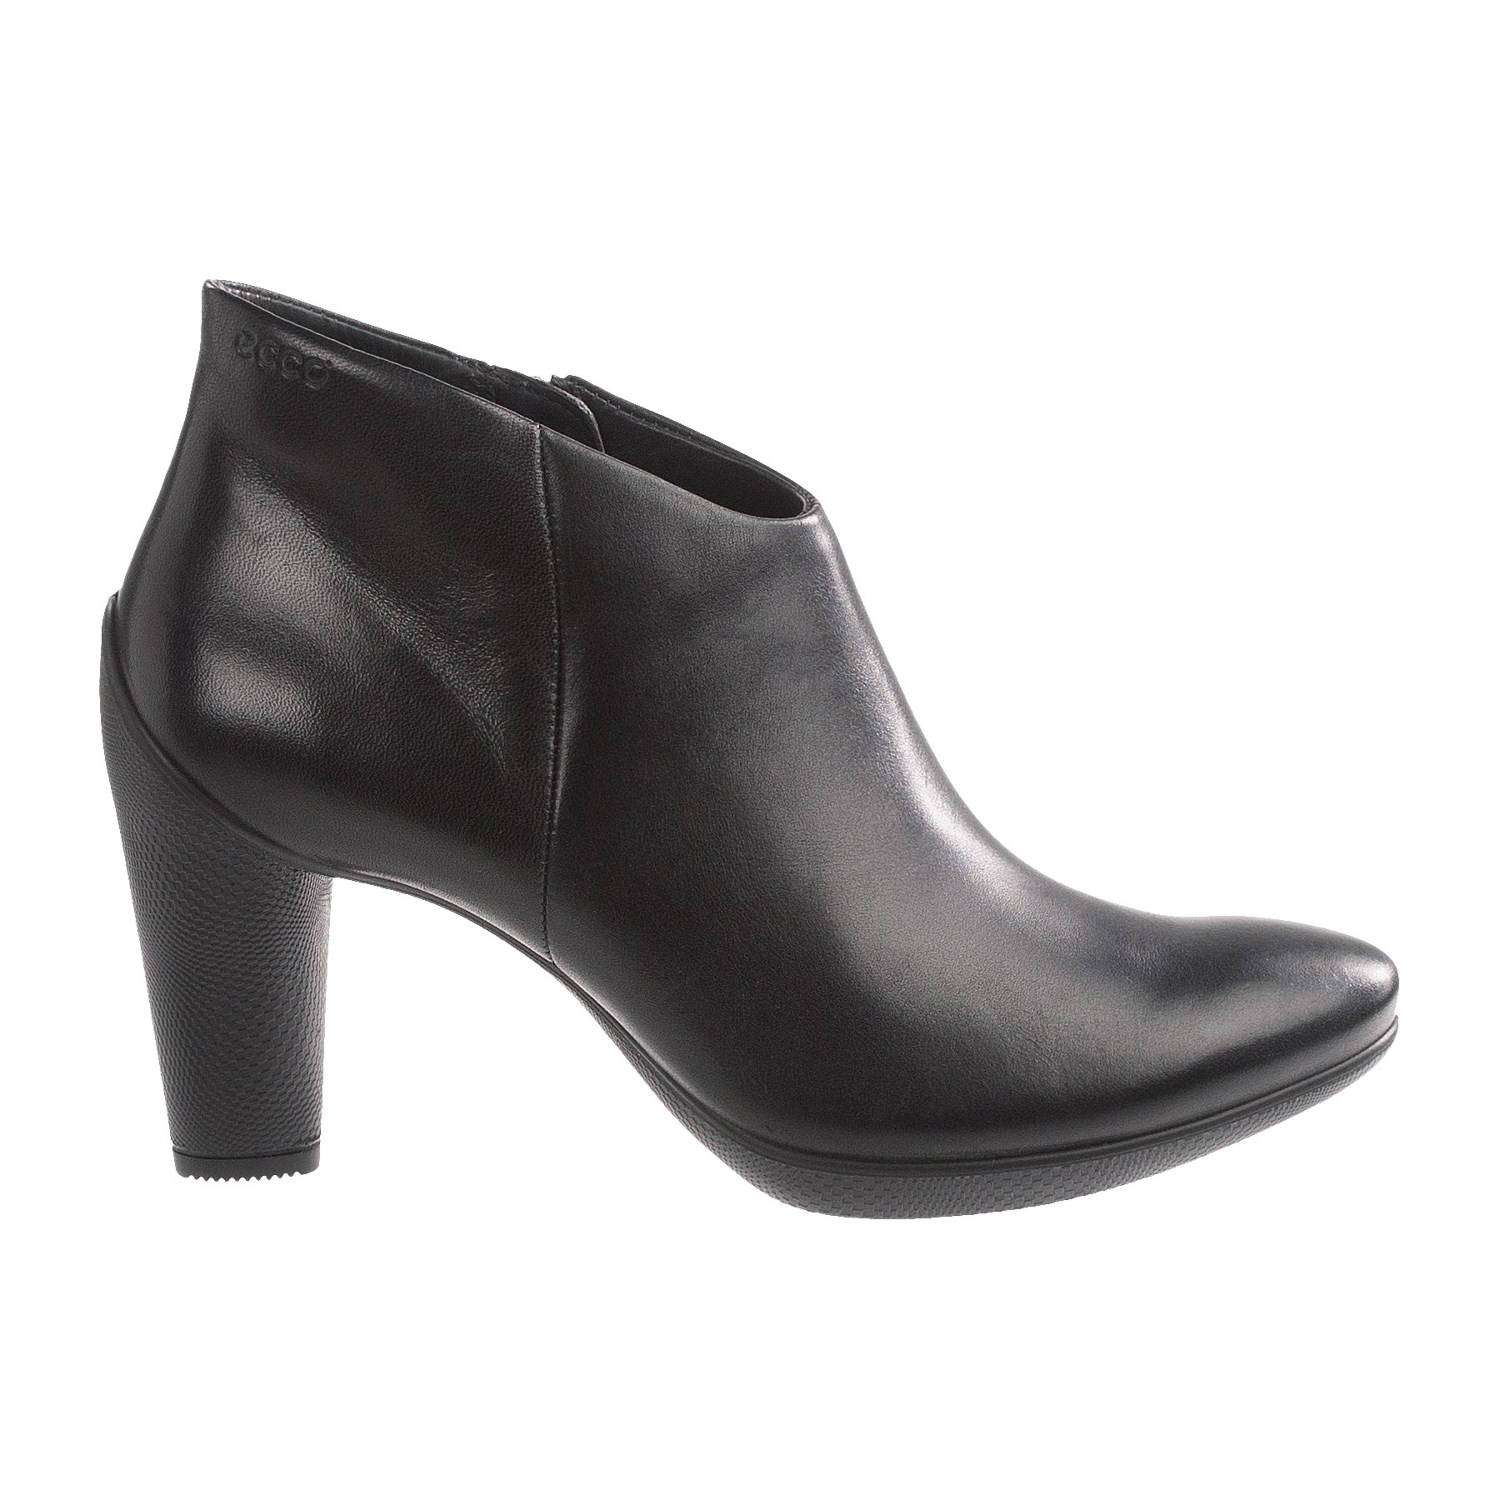 ecco sculptured 75 shoetie ankle boots for 7624r